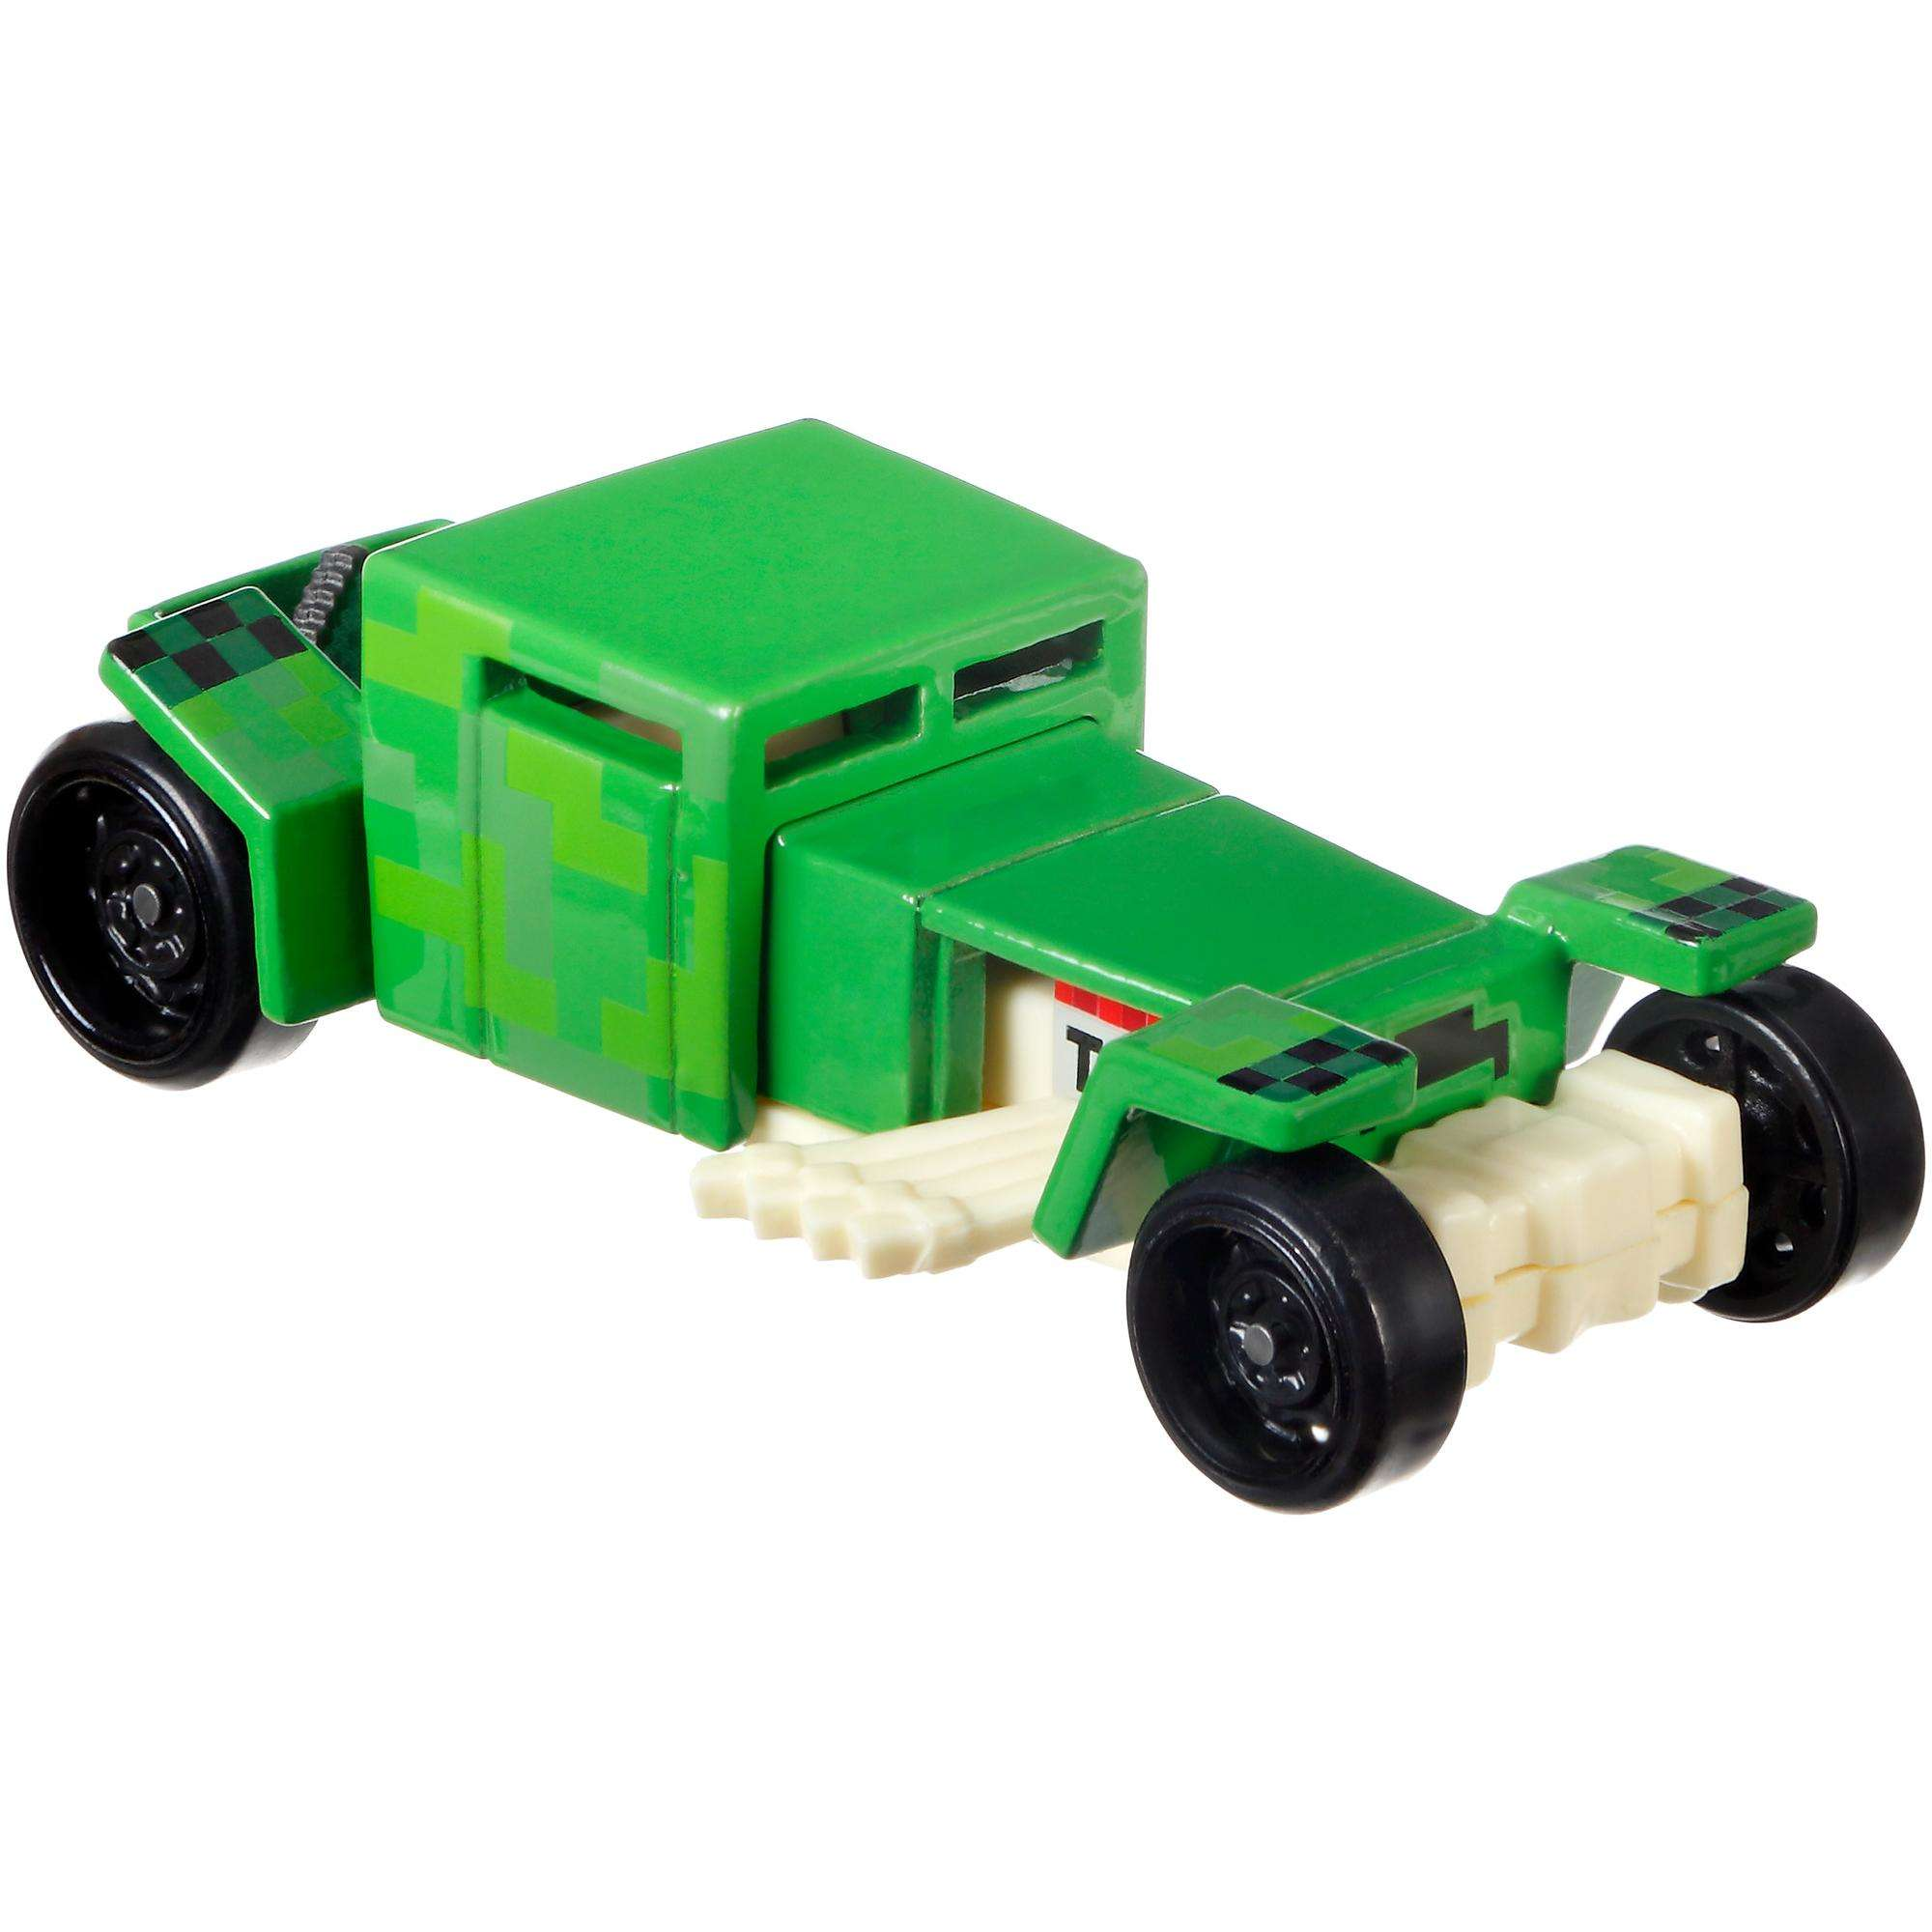 Hot Wheels Minecraft Creeper Vehicle by Mattel